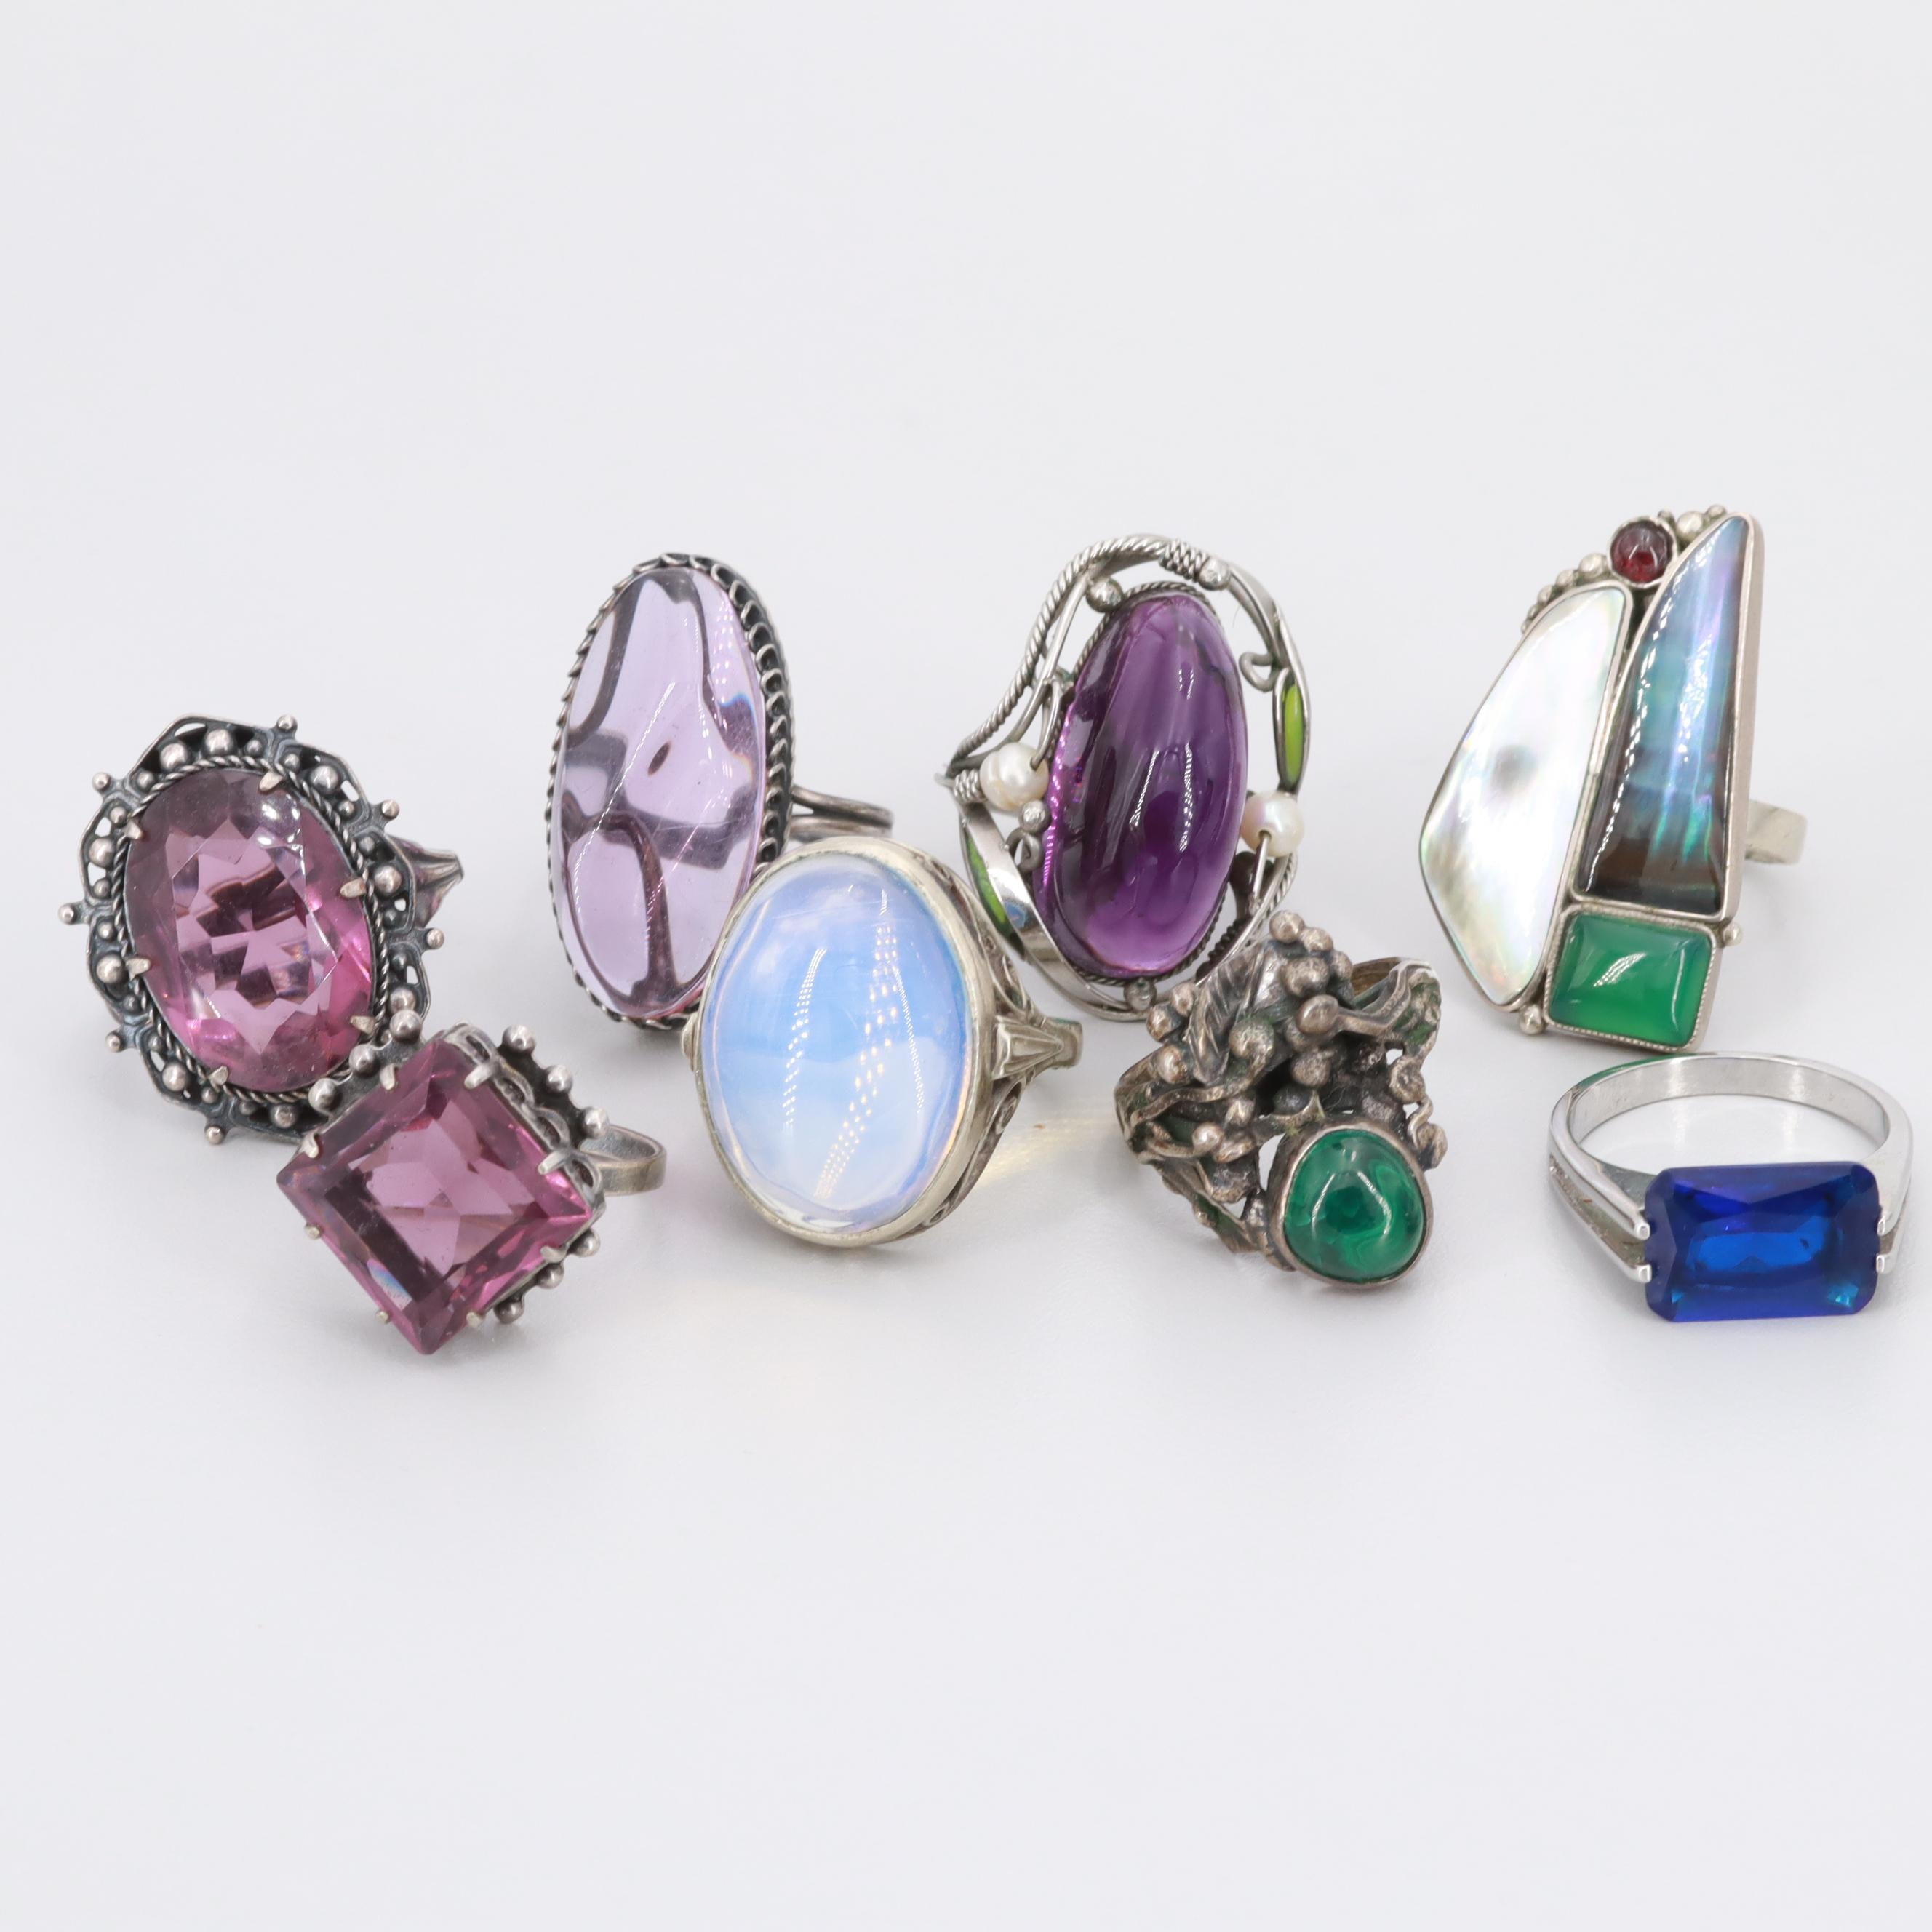 Silver Tone Chrysoprase, Cultured Pearl and Amethyst Rings